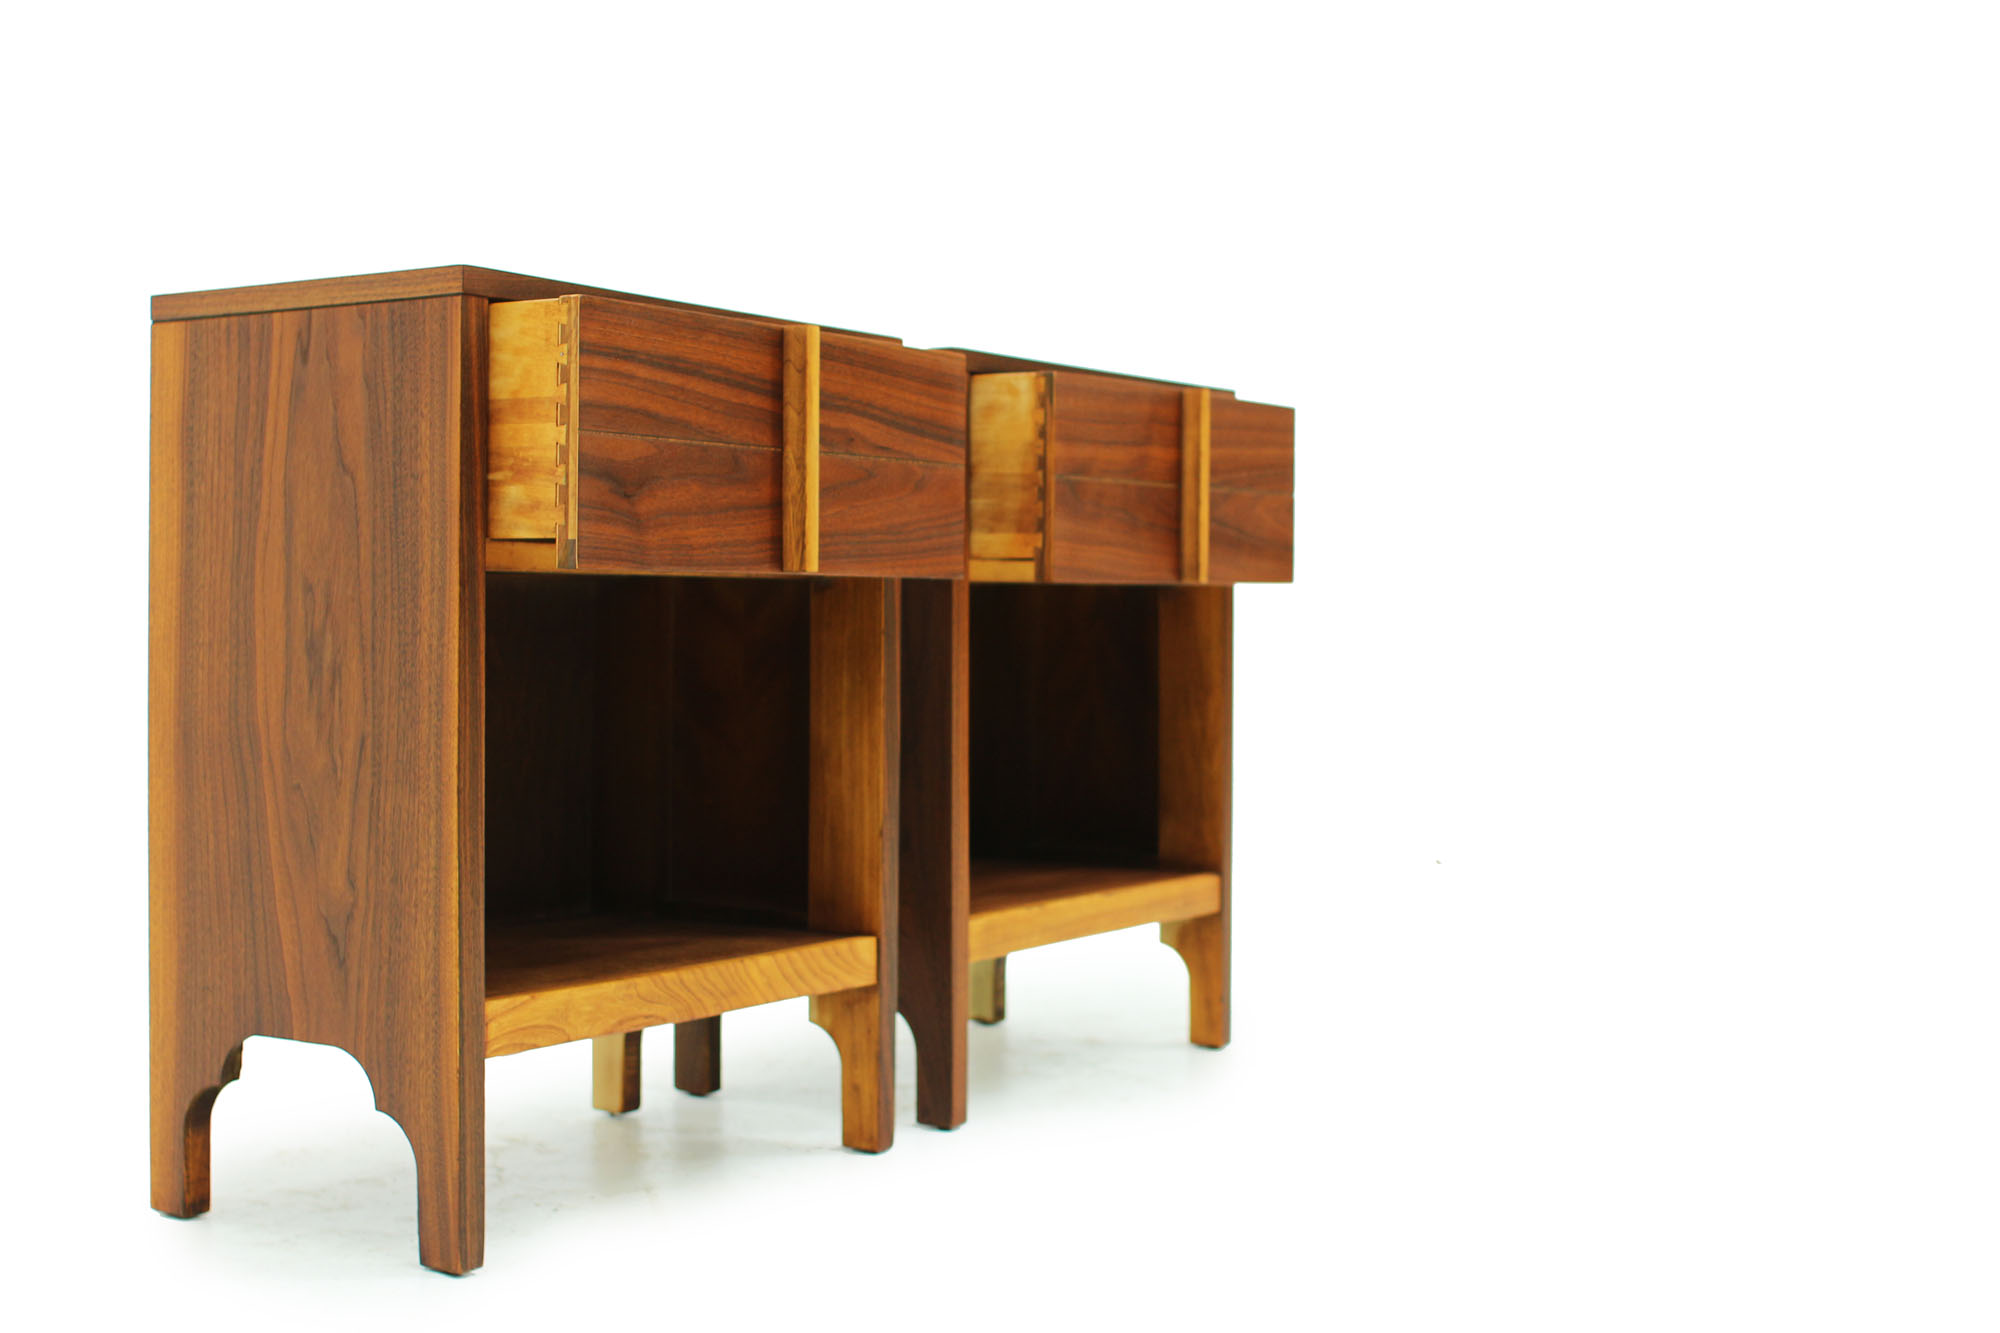 Pair of Walnut Bedside Night Stands Mid century modern design (2).jpg